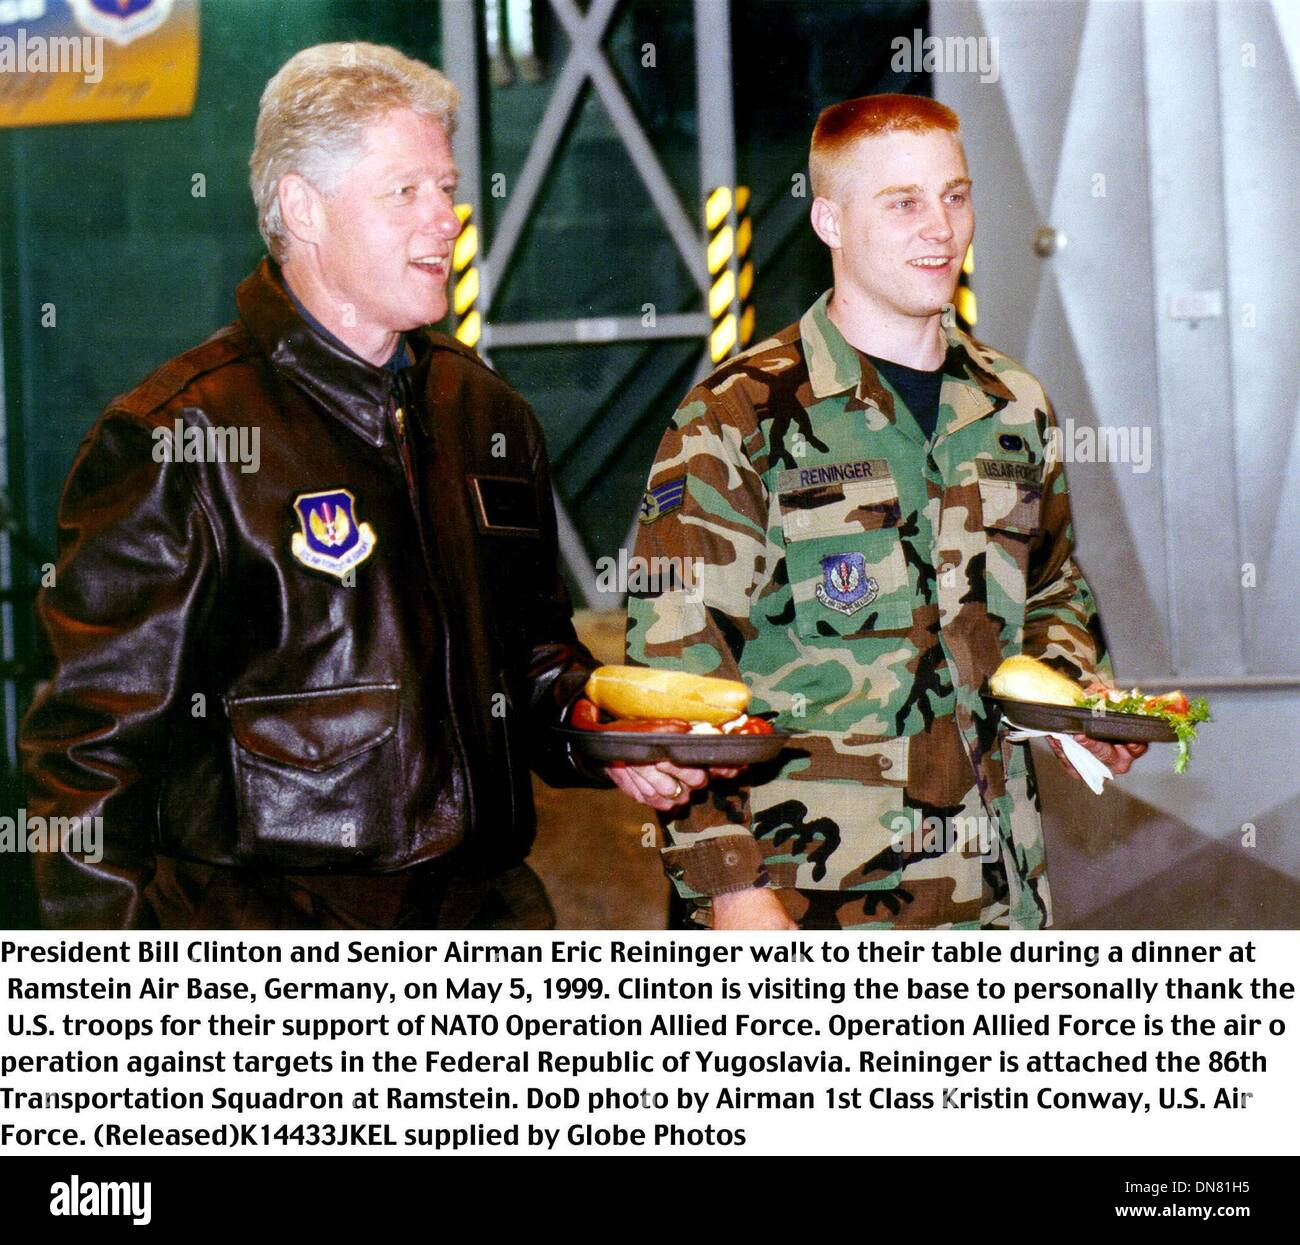 May 13, 1999 - Ramstein Ab, Germany - K14433JKEL      05/05/99.990505-F-2715C-001..President Bill Clinton and Senior Airman Eric Reininger walk to their table during a dinner at Ramstein Air Base, Germany, on May 5, 1999. Clinton is visiting the base to personally thank the U.S. troops for their support of NATO Operation Allied Force.  Operation Allied Force is the air operation ag - Stock Image